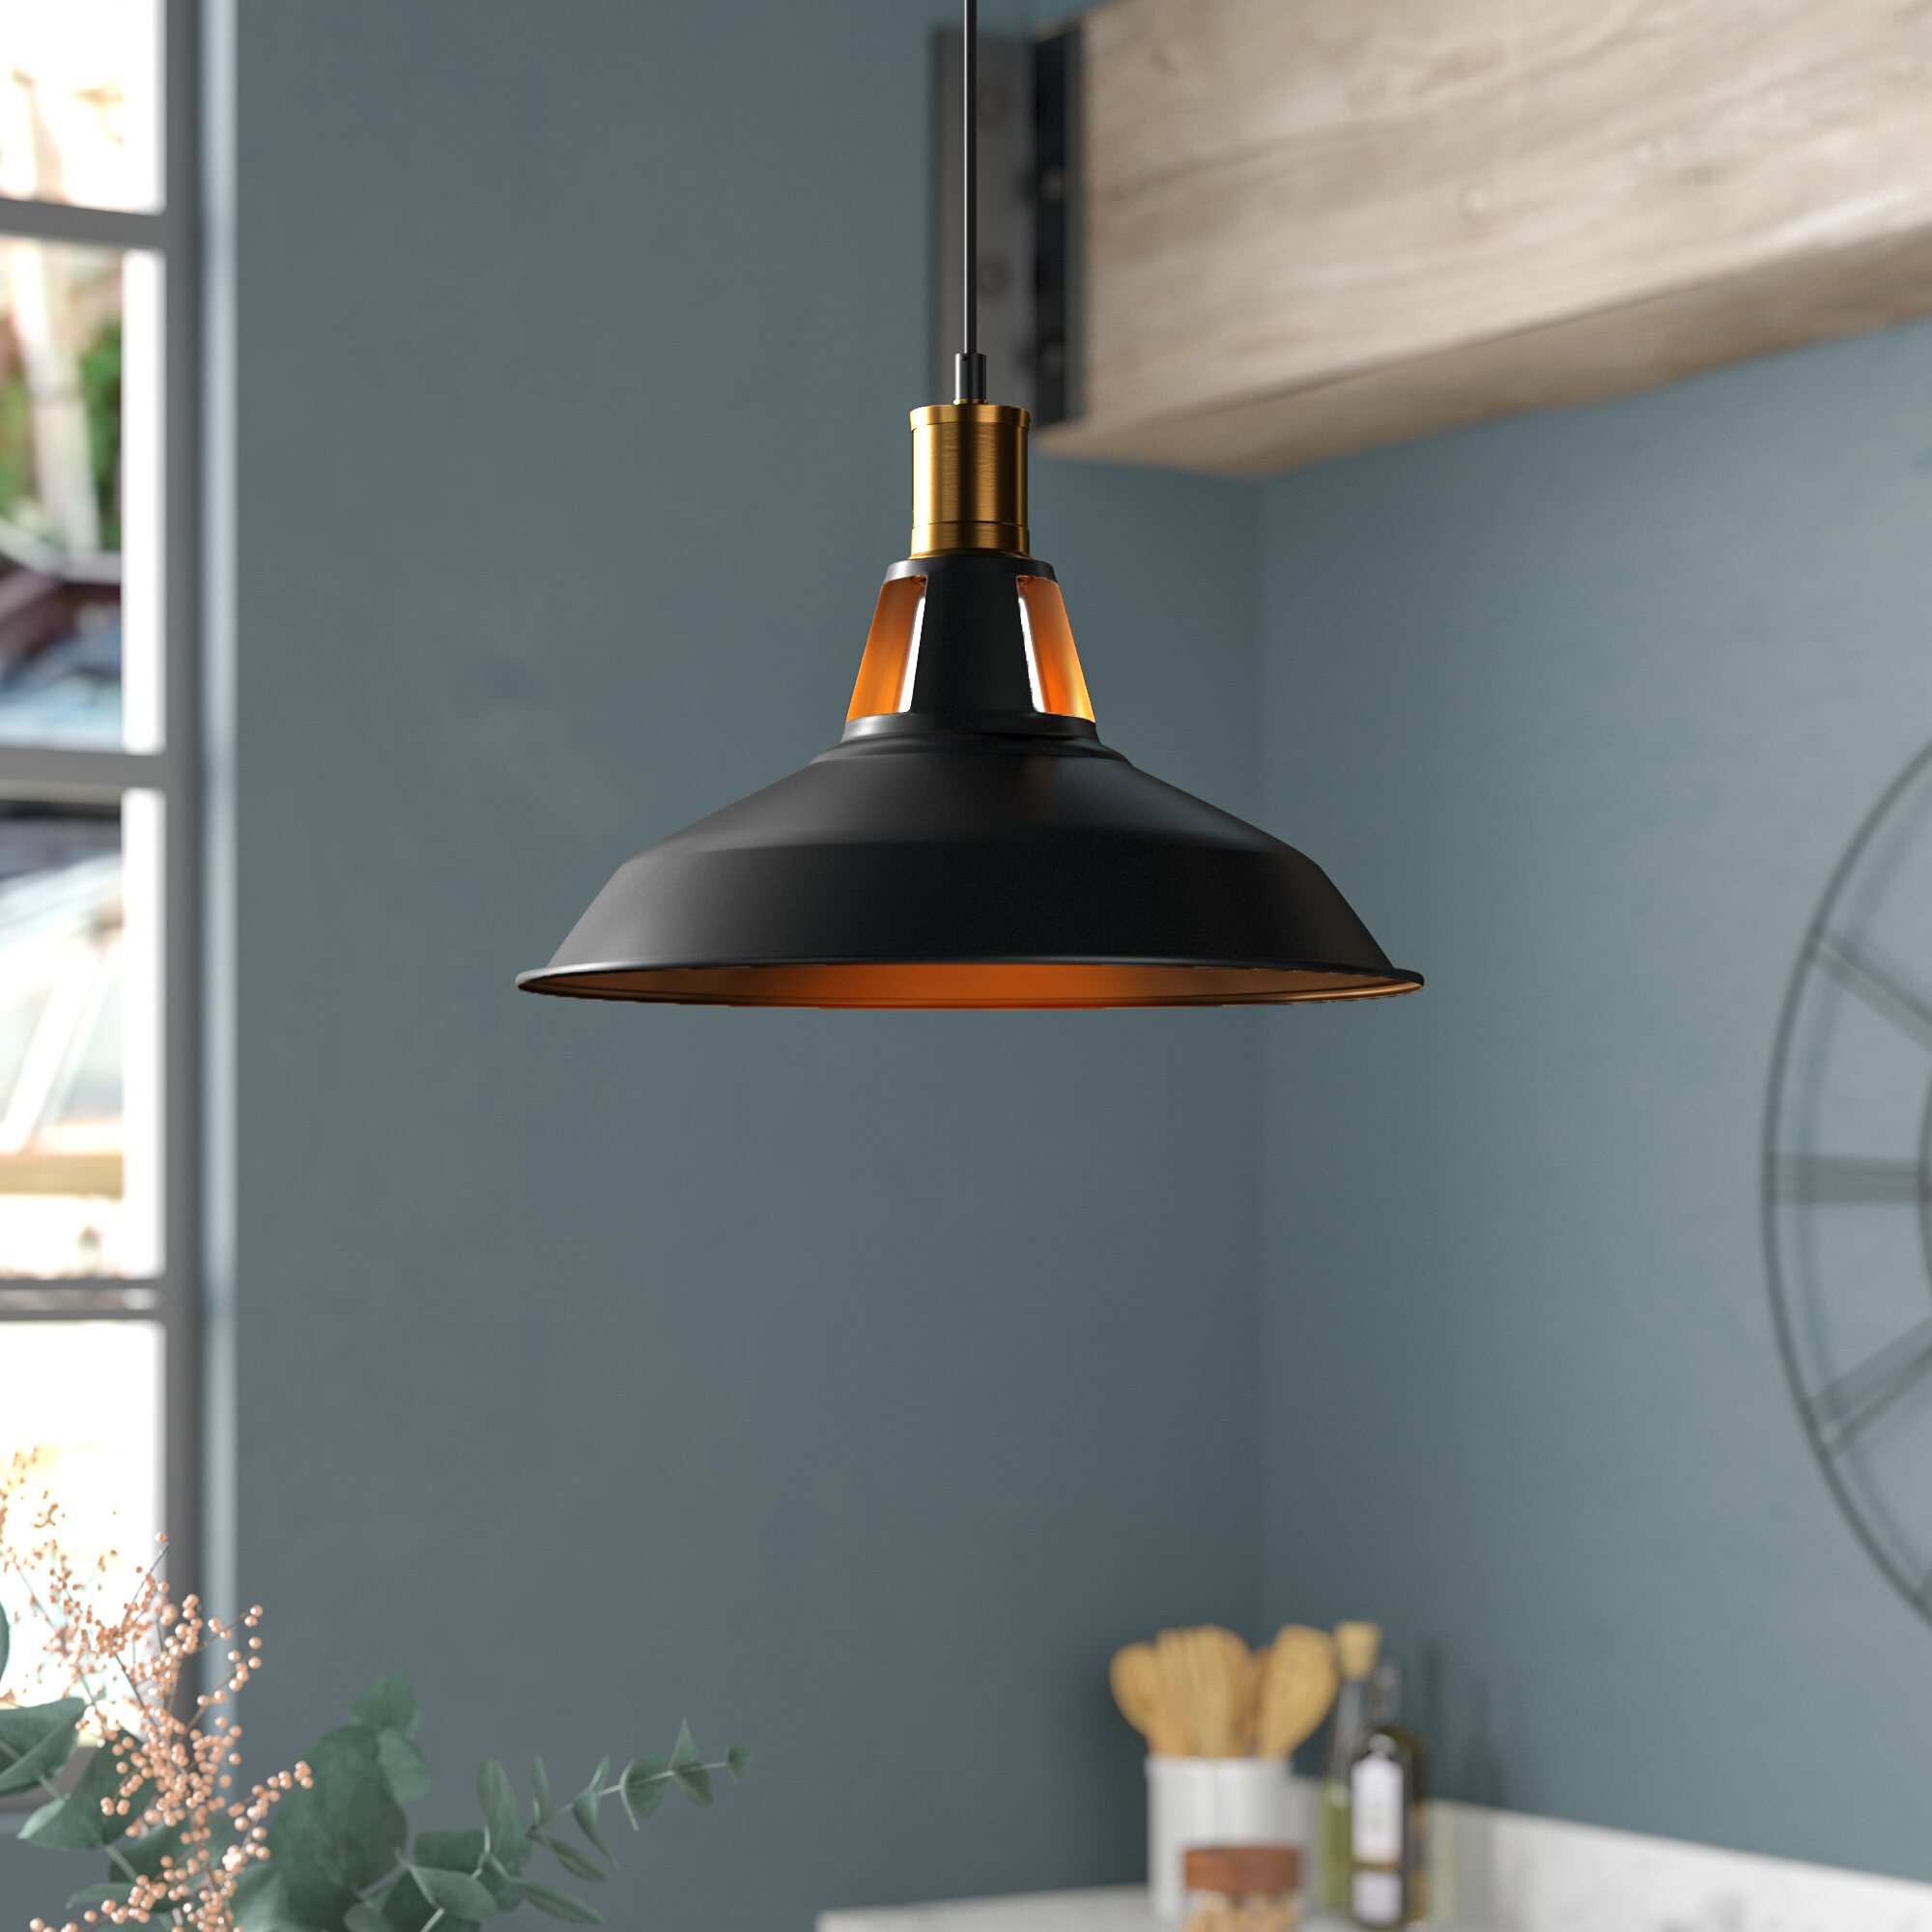 Newhaven 1 Light Led Dome Pendant With Regard To Gattis 1 Light Dome Pendants (View 8 of 30)